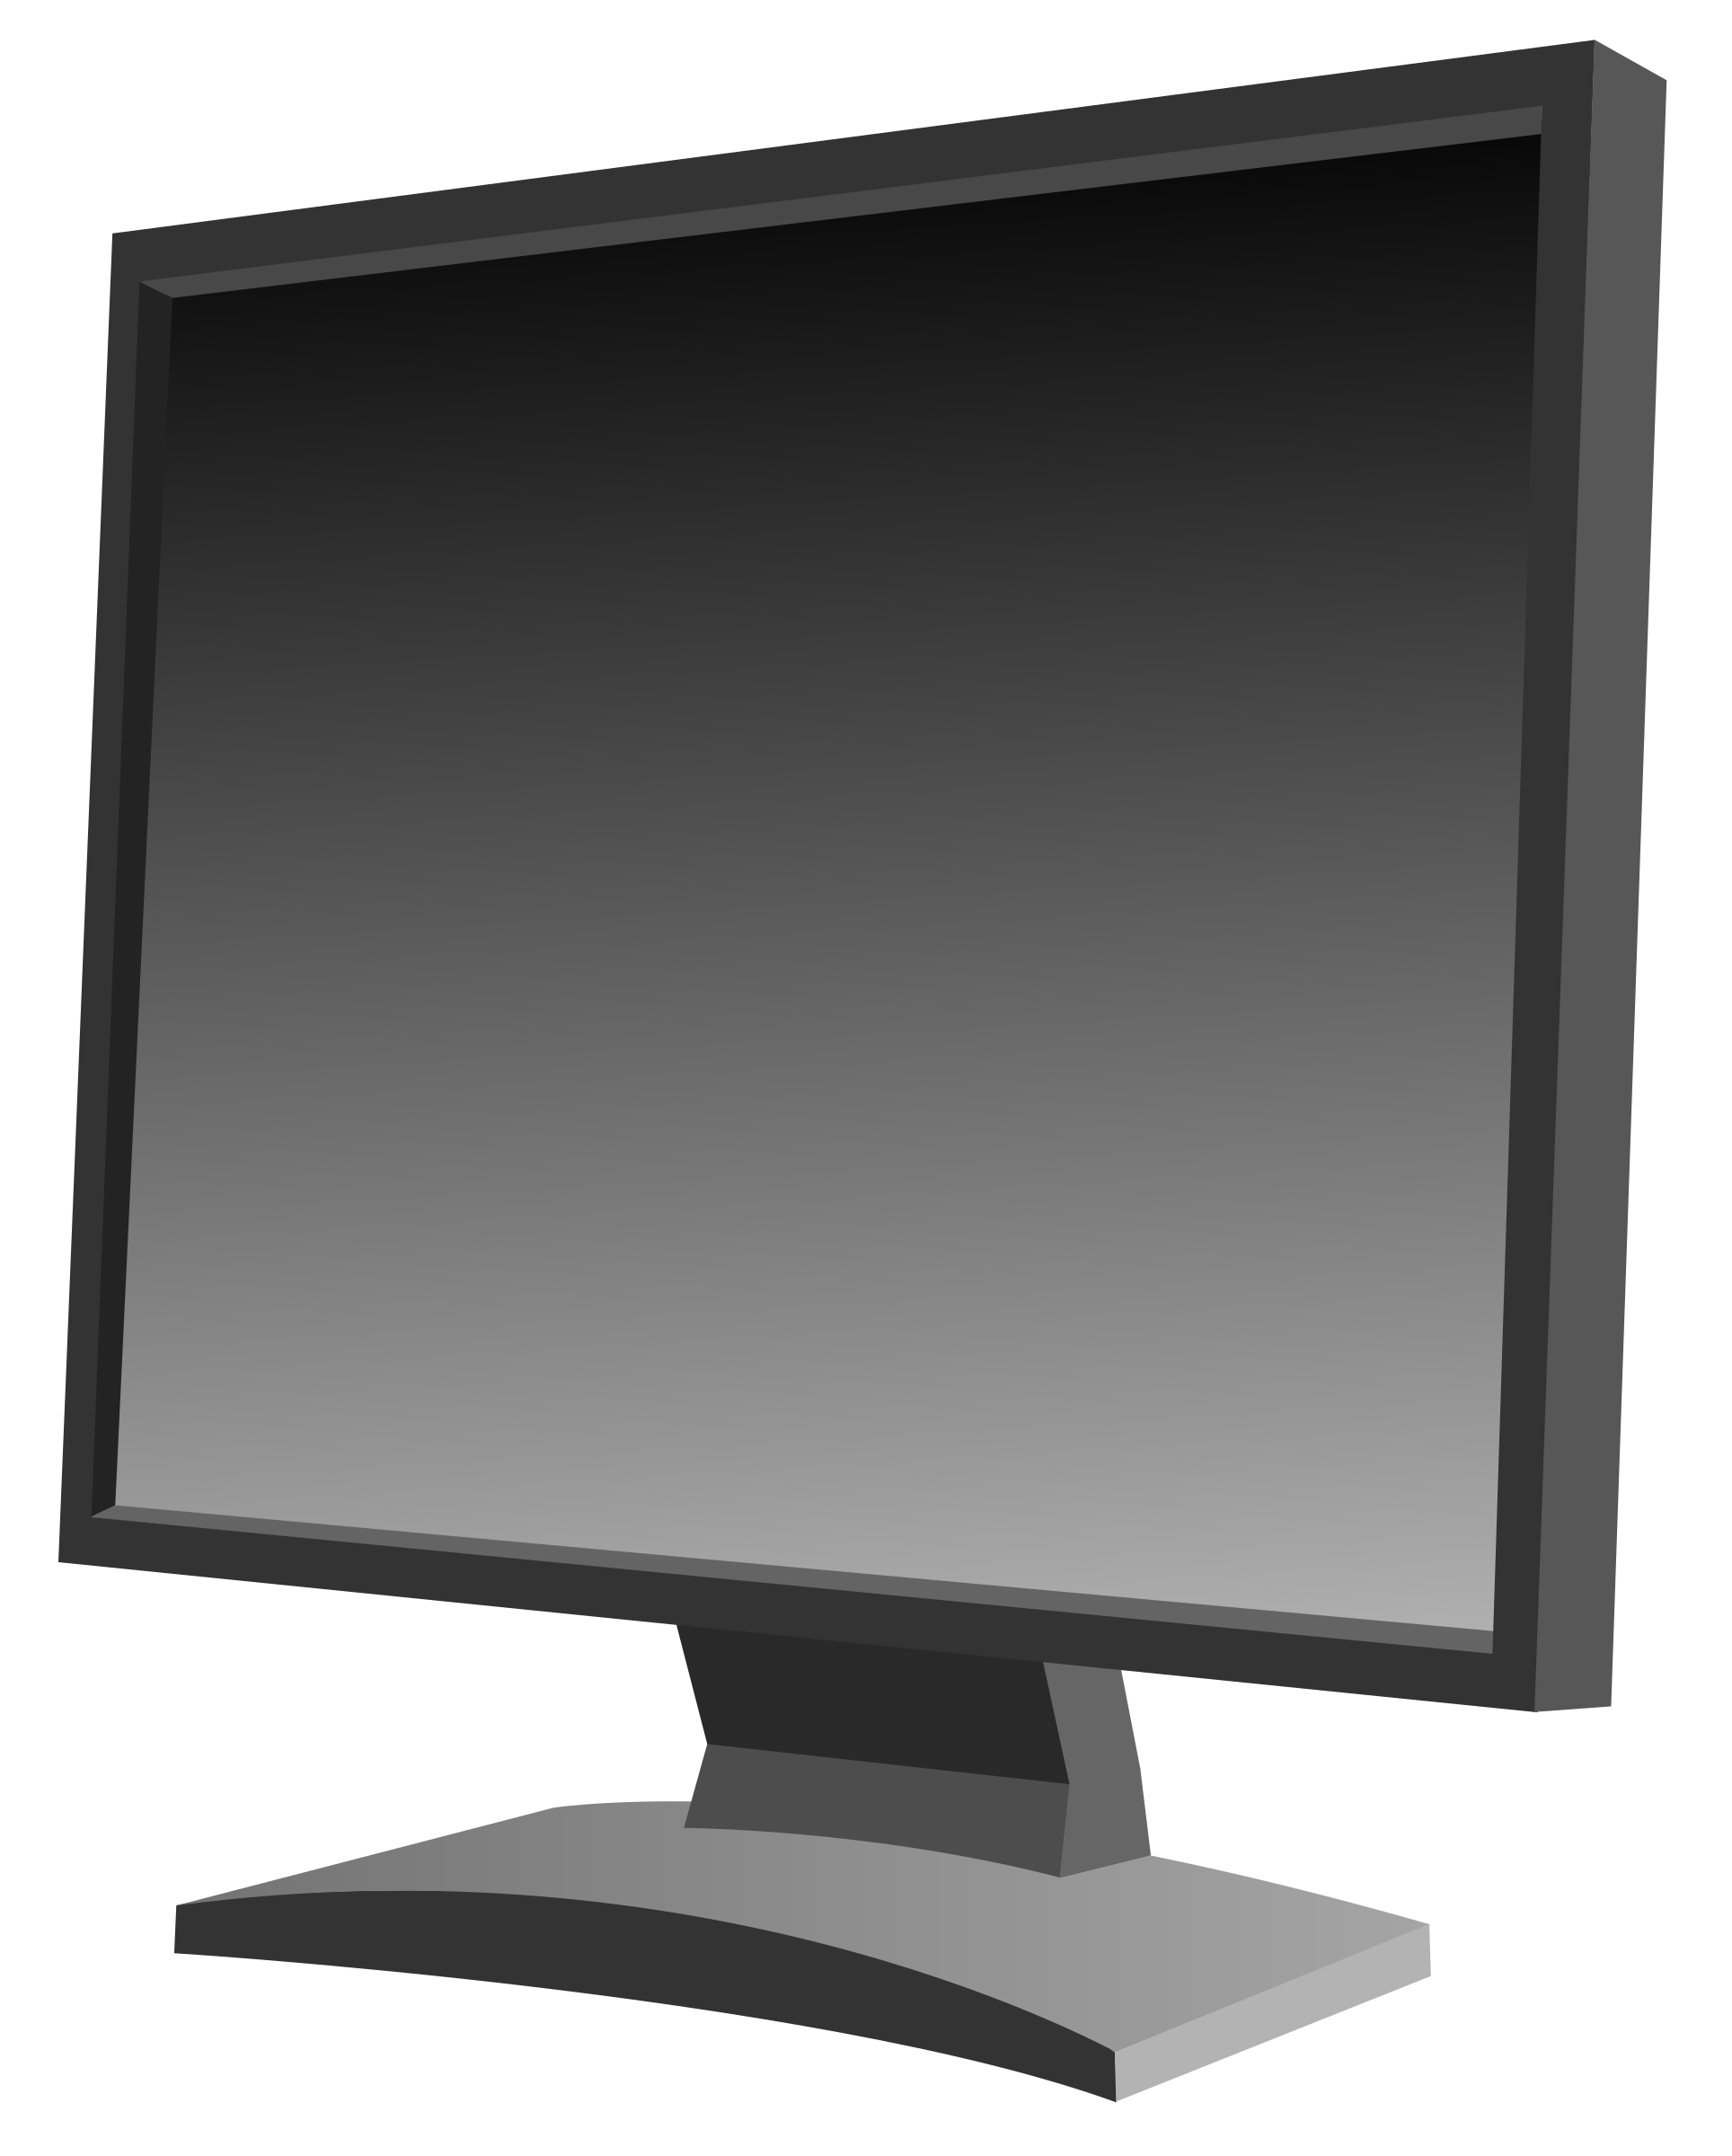 LCD monitor by Aquila